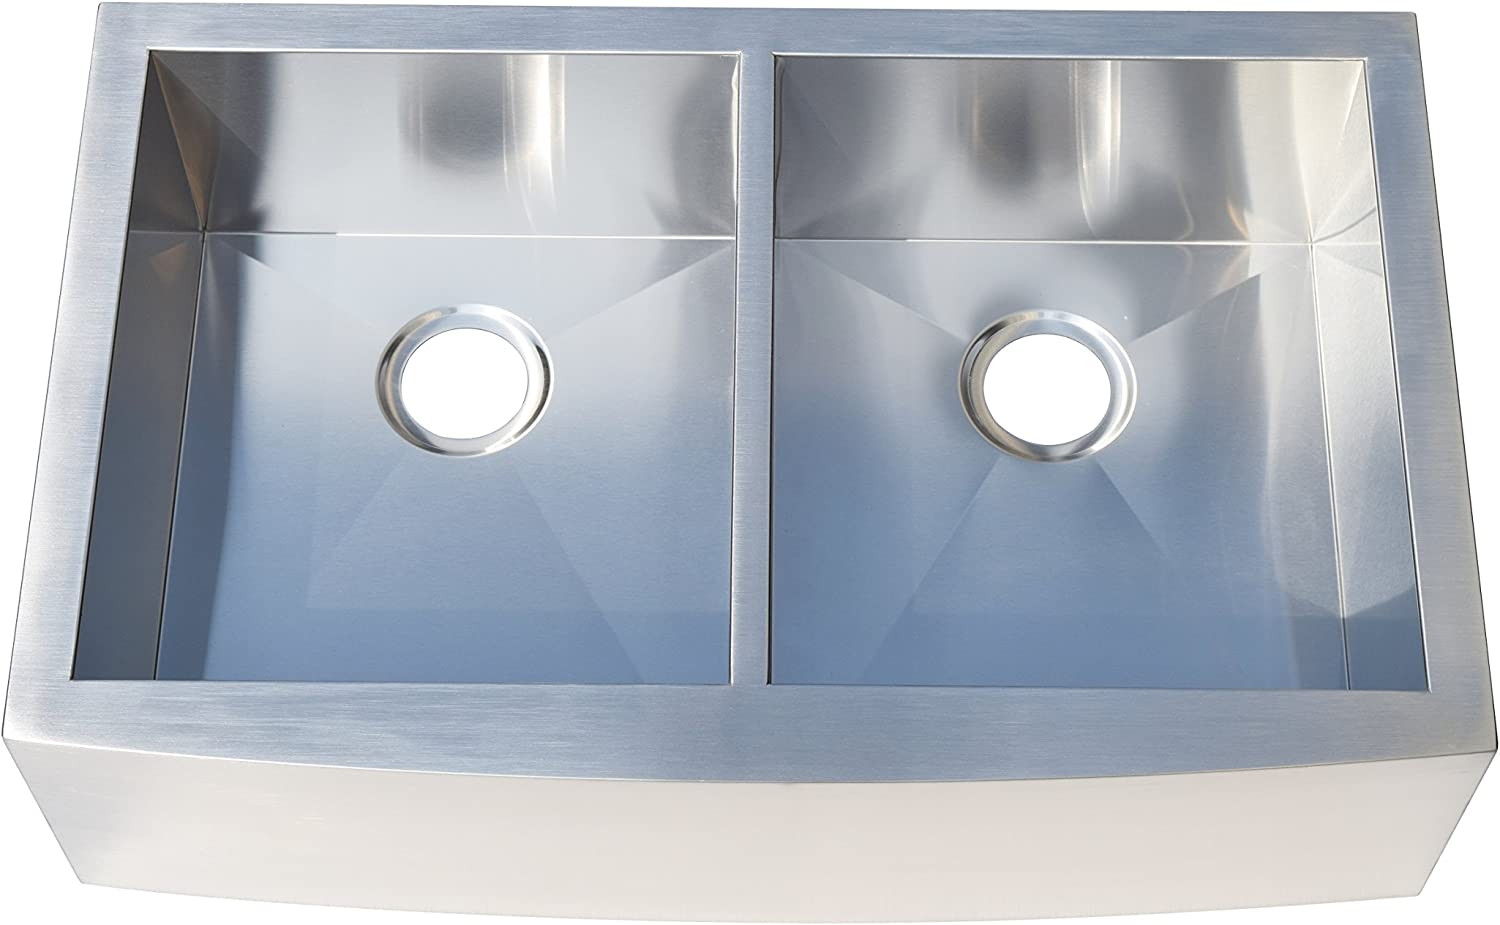 Farmhouse Apron Front Stainless Steel 33 in. Double Basin Kitchen Sink